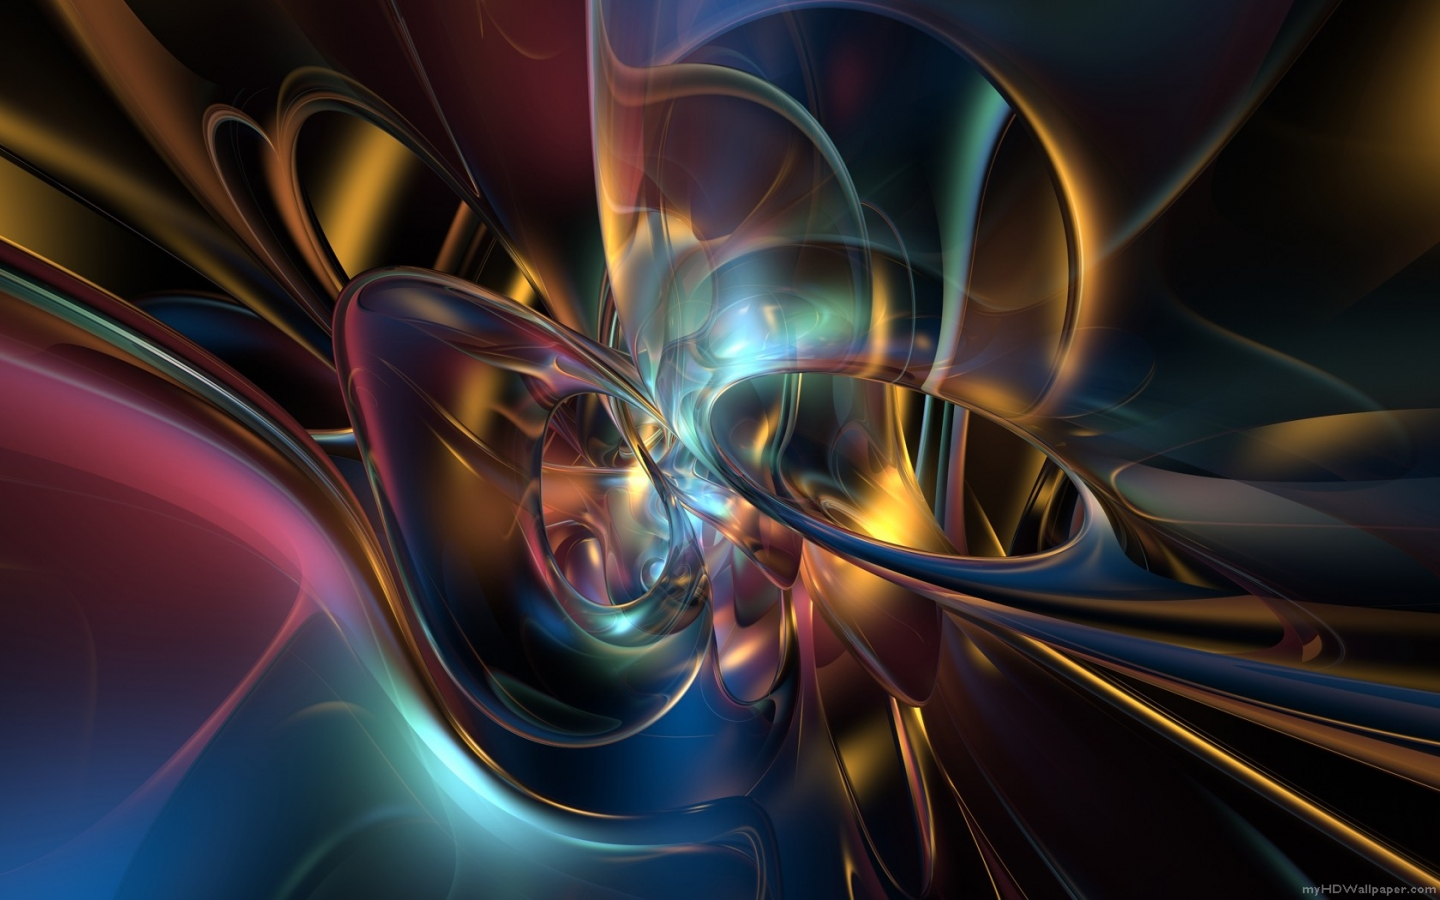 Abstract Hd Wallpapers: 45+ HD Abstract Wallpapers